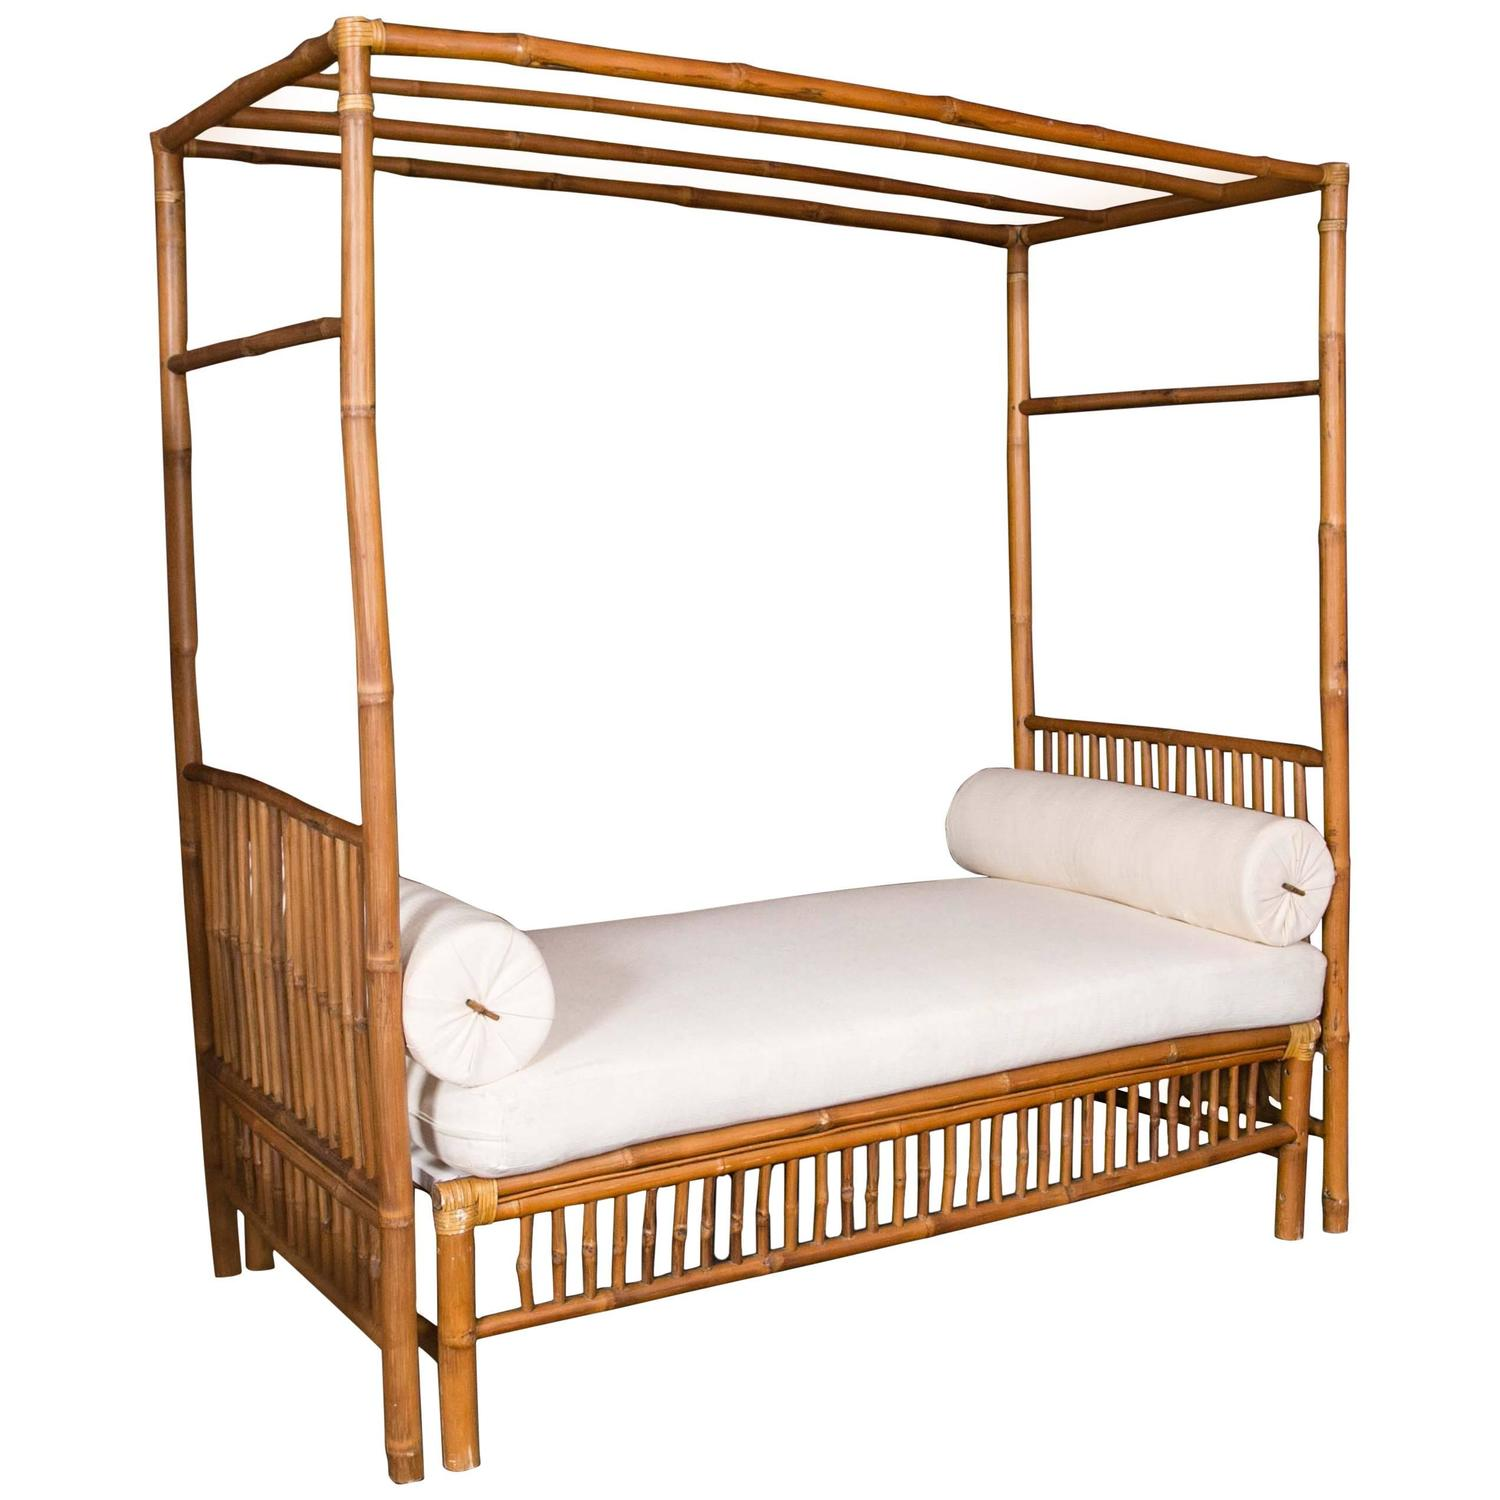 Rattan Daybed For Sale At 1stdibs